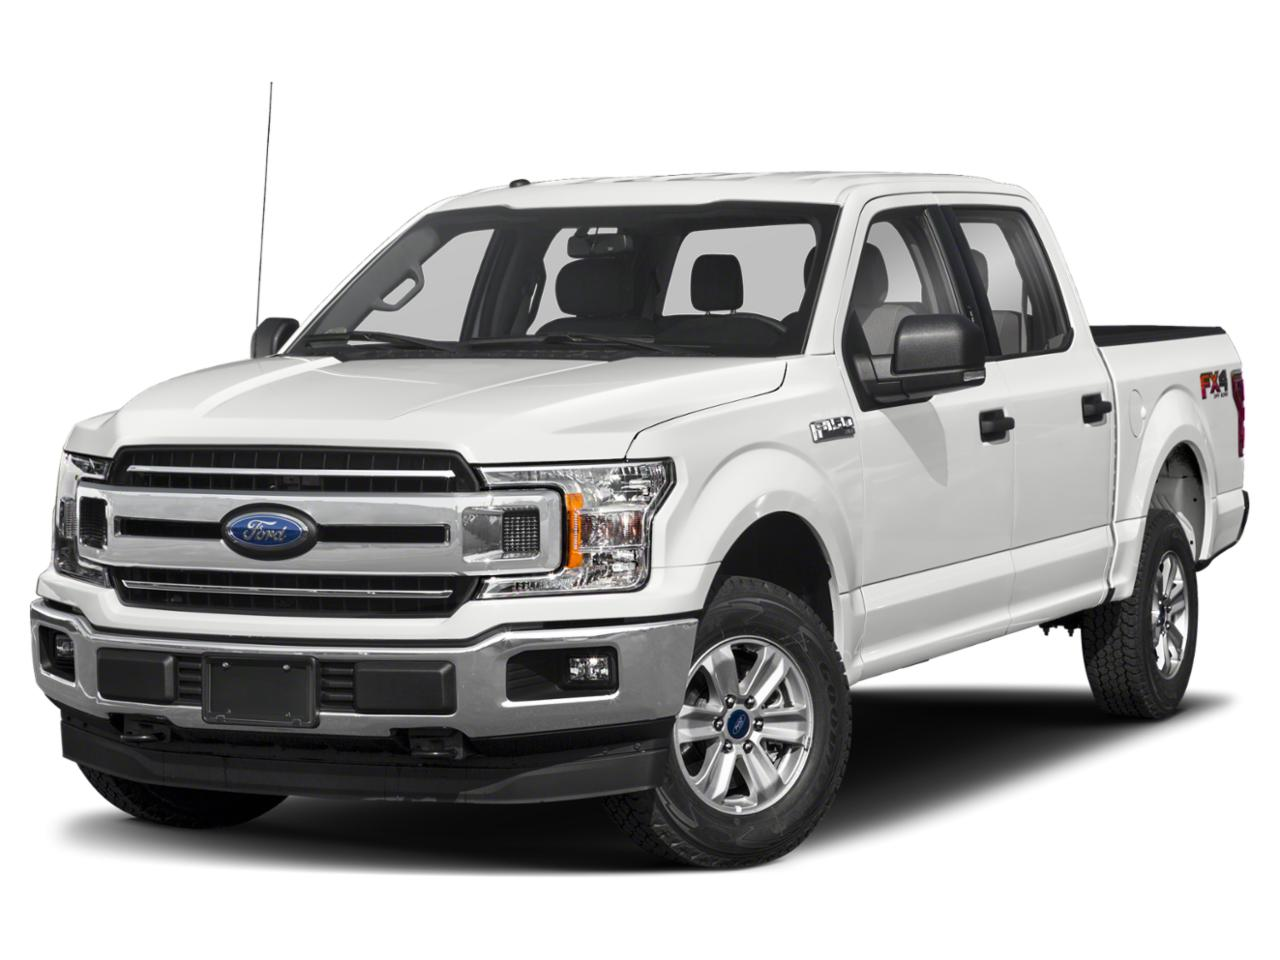 2018 Ford F-150 XLT Crew Cab Pickup Slide